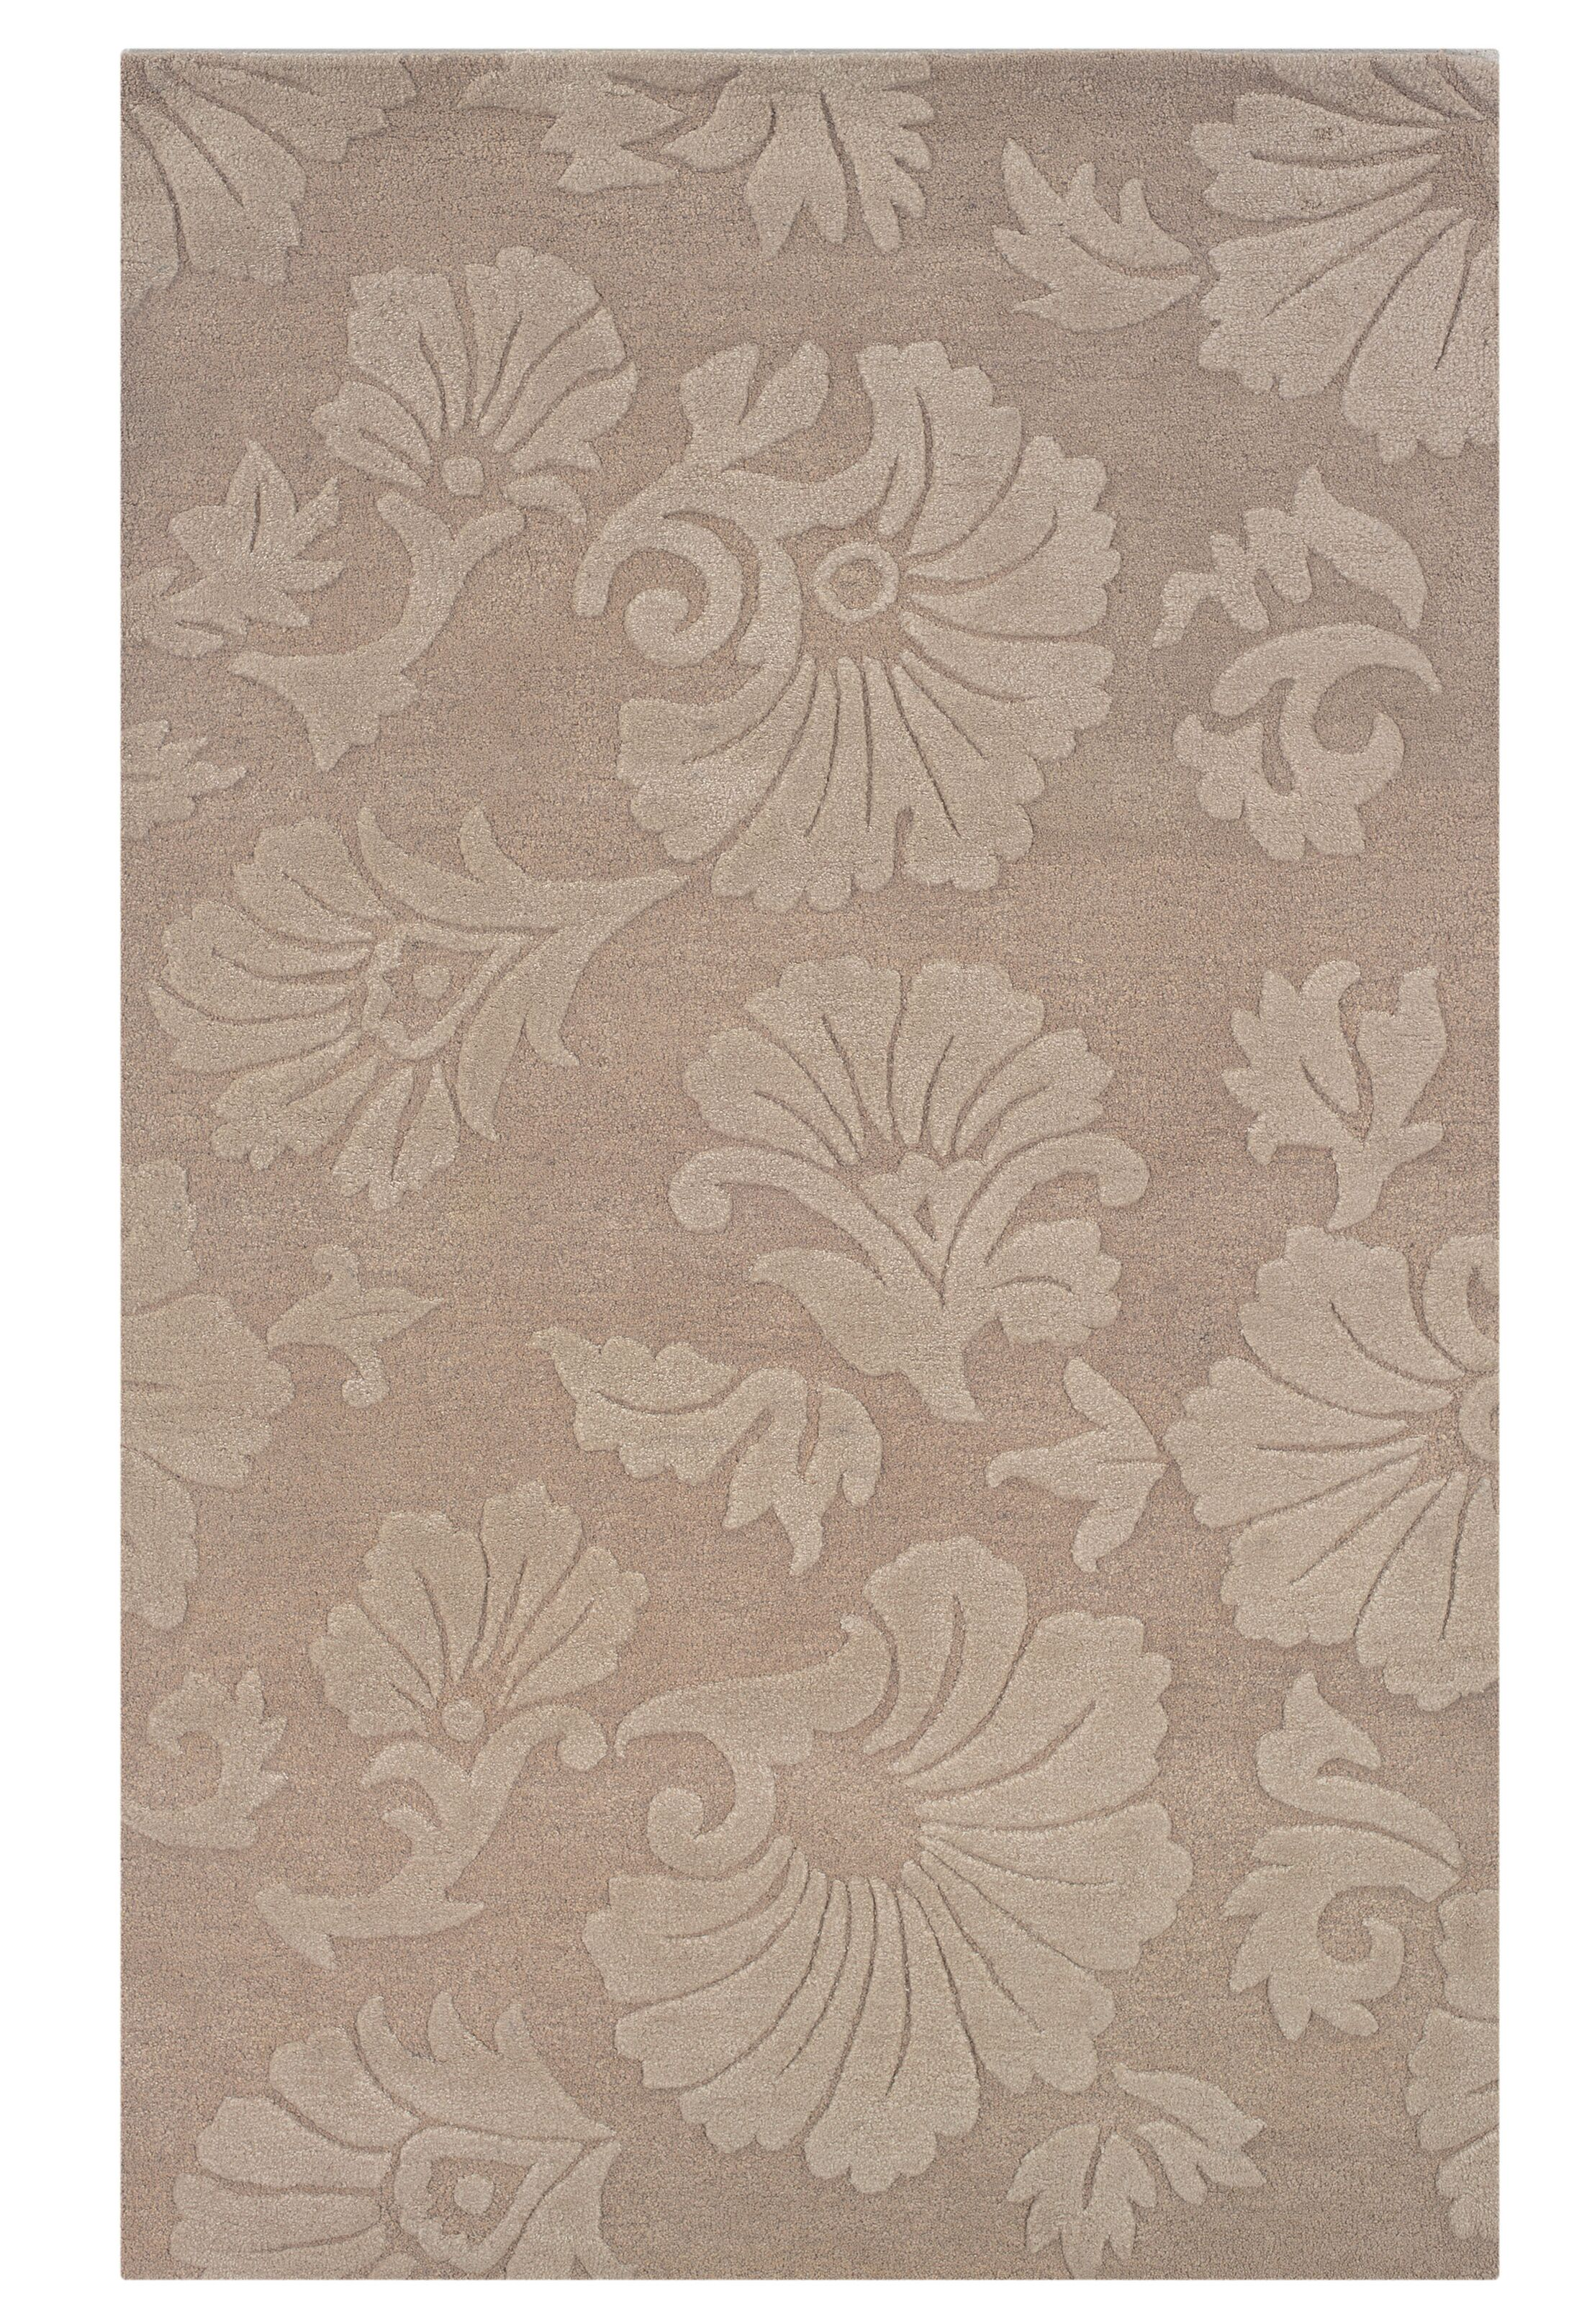 Goodrum Hand-Tufted Beige Area Rug Rug Size: Rectangle 5' x 8'